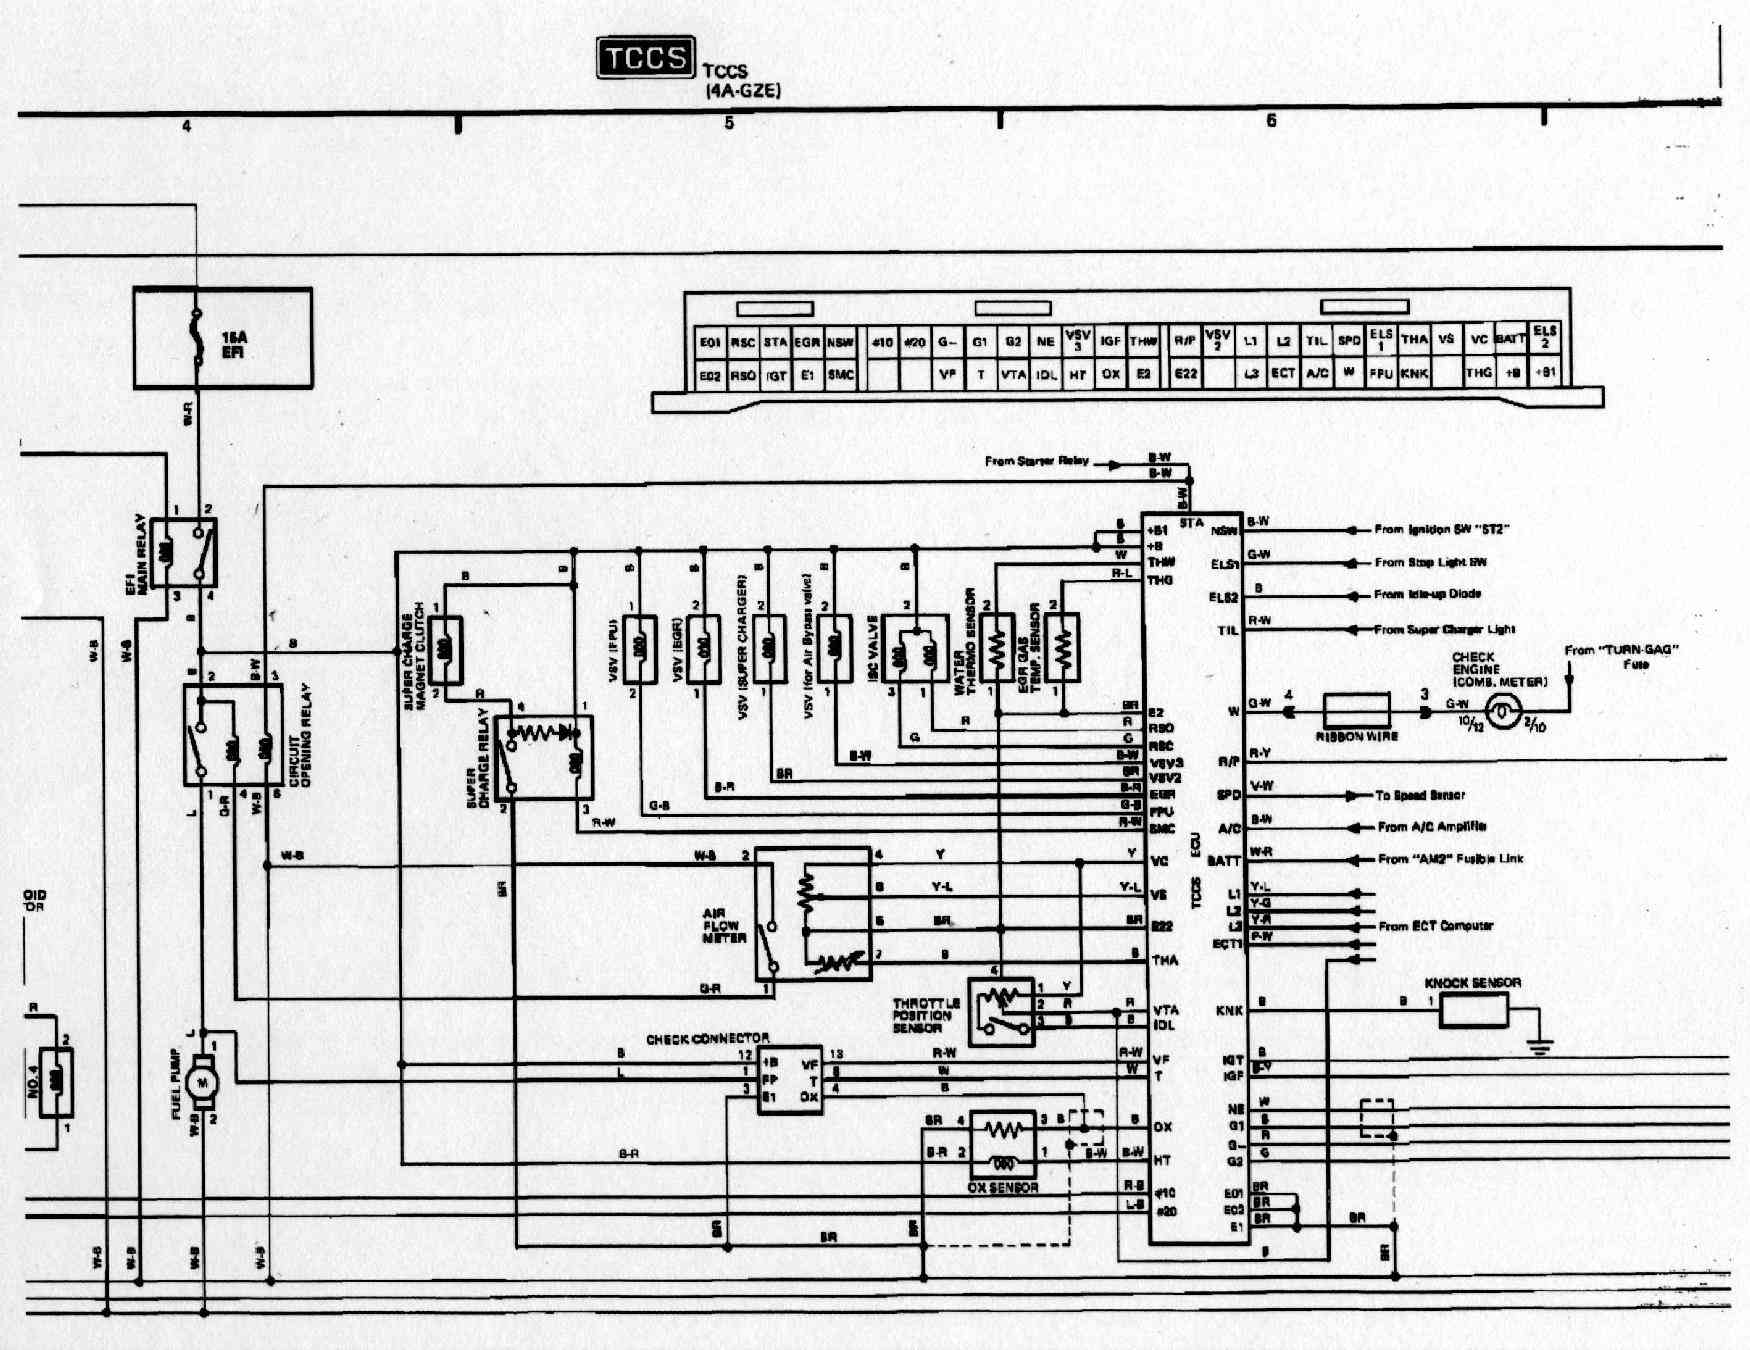 diagram] 1993 toyota mr2 wiring diagram full version hd quality wiring  diagram - incomedailysystems.elezionicomunebra.it  incomedailysystems.elezionicomunebra.it